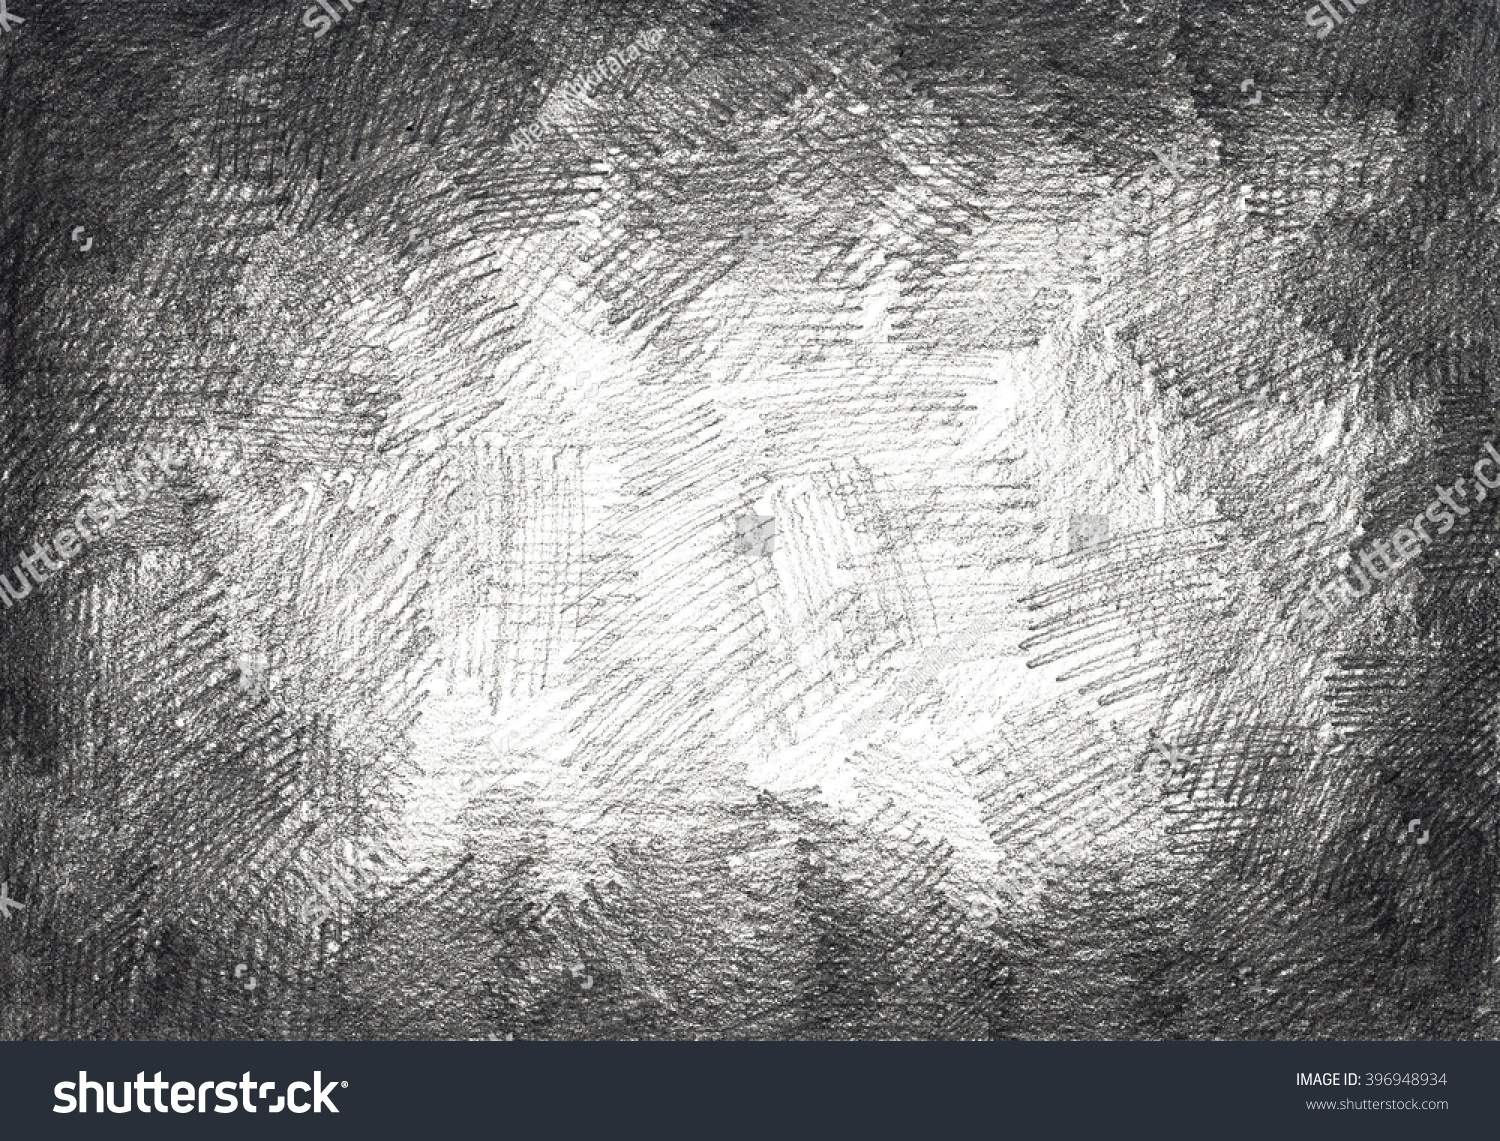 Background pencil sketch strokes crosshatch hand drawing black and white